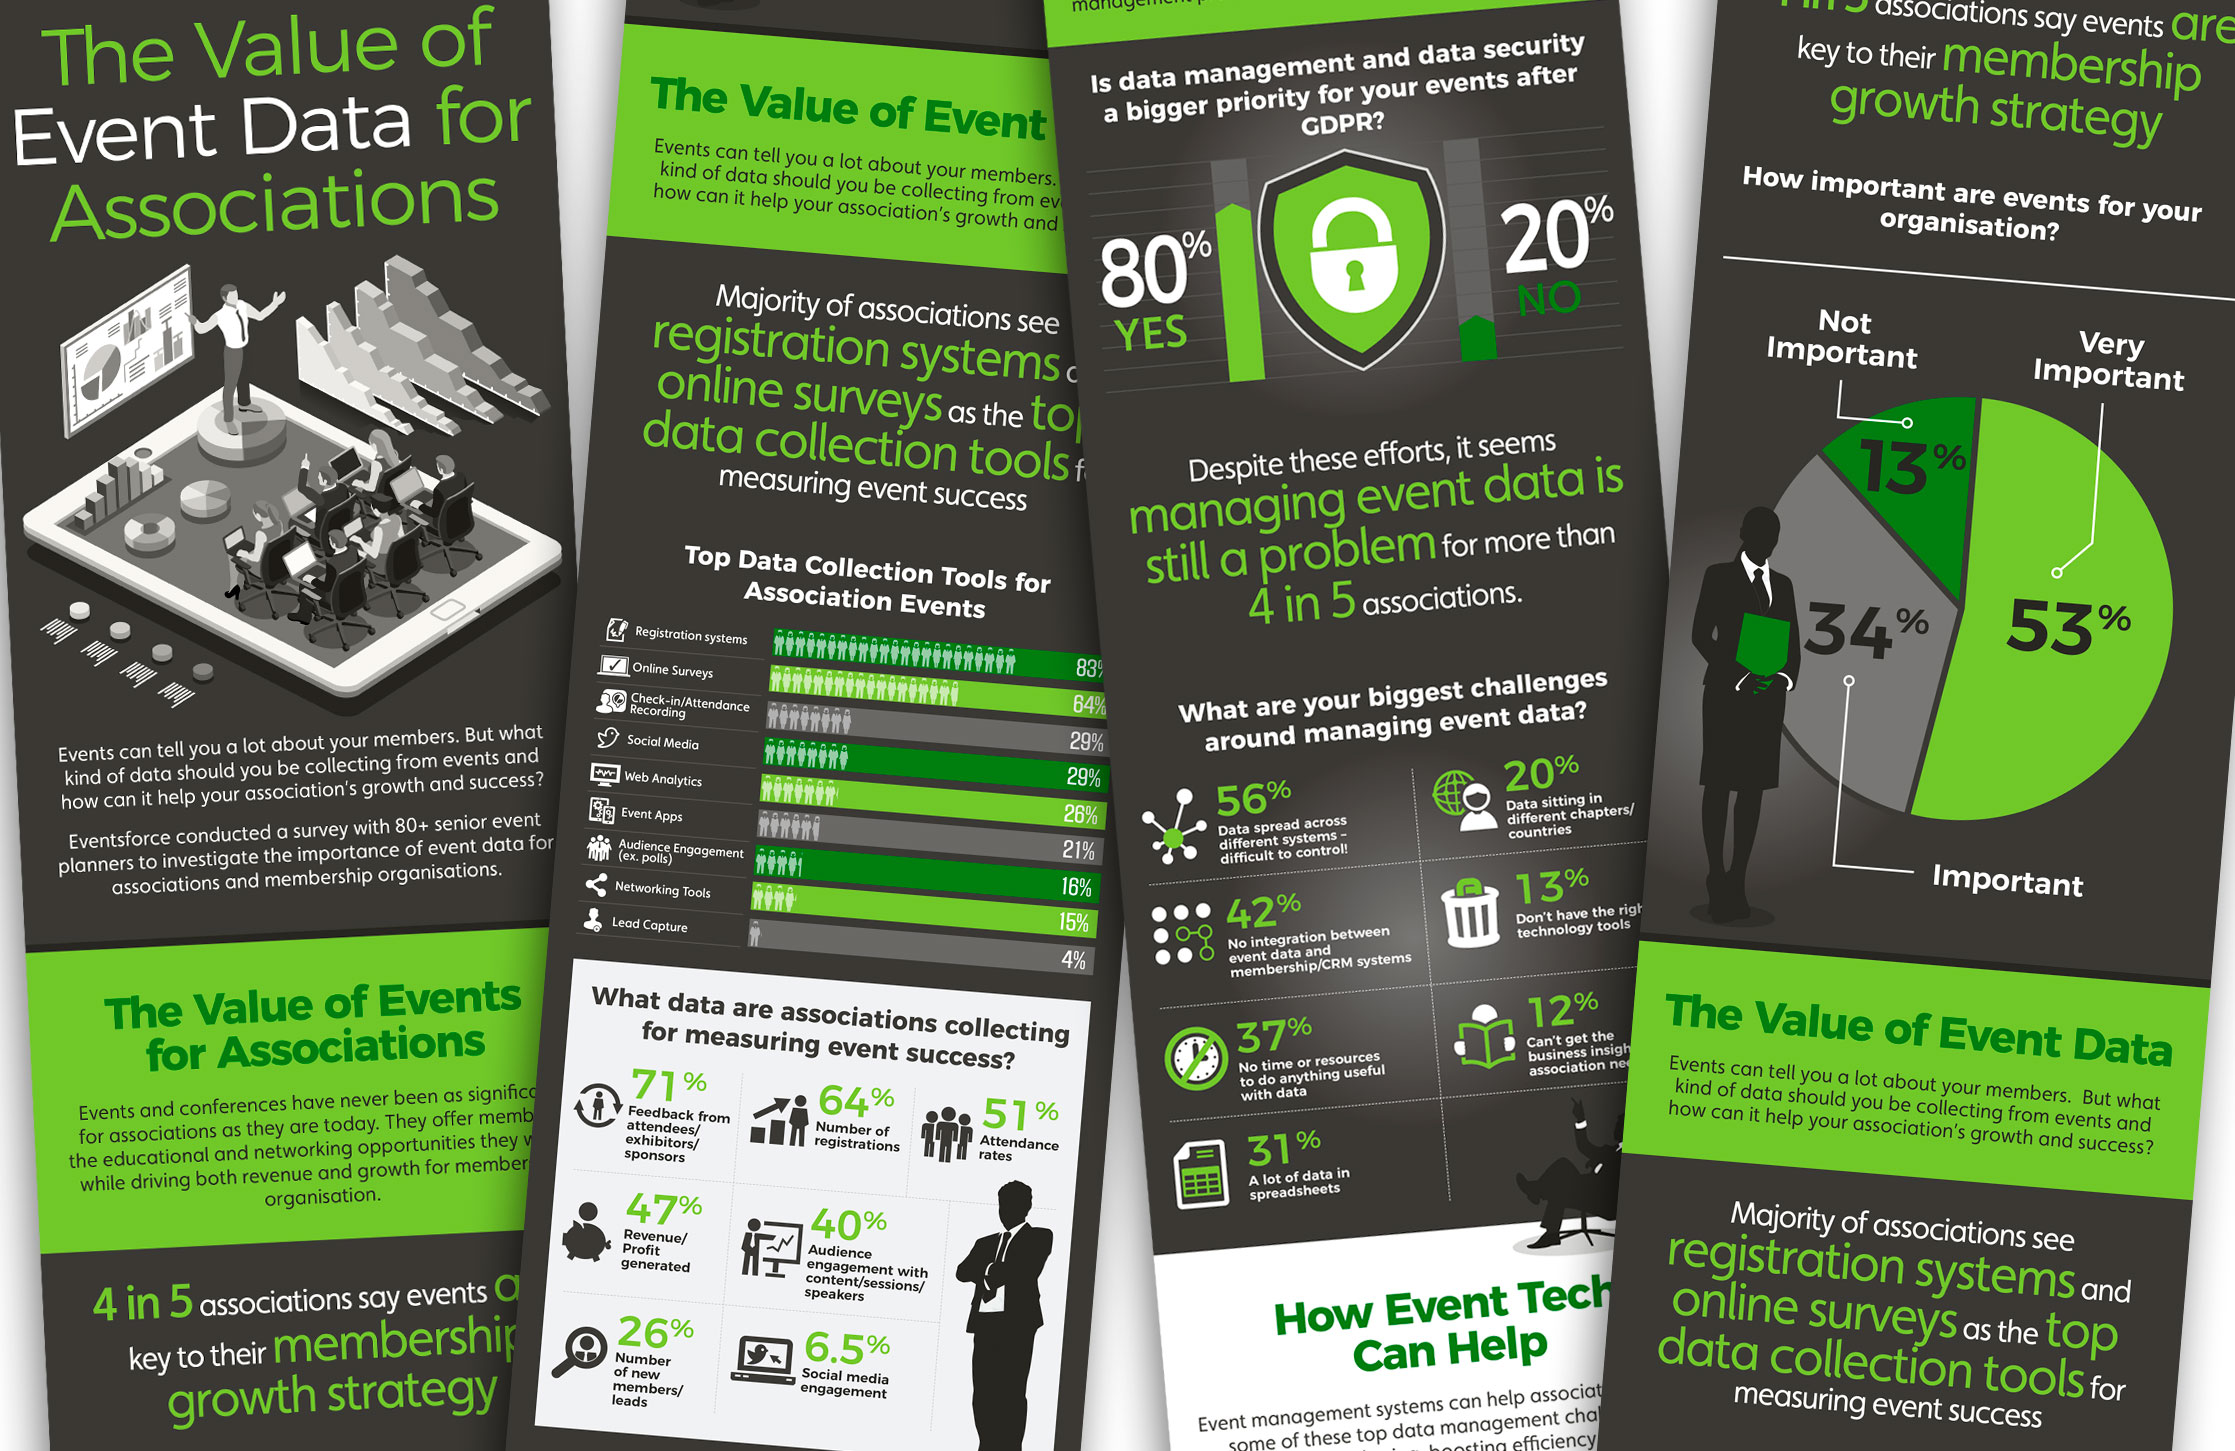 Eventsforce Infographic on the Value of Event Data.